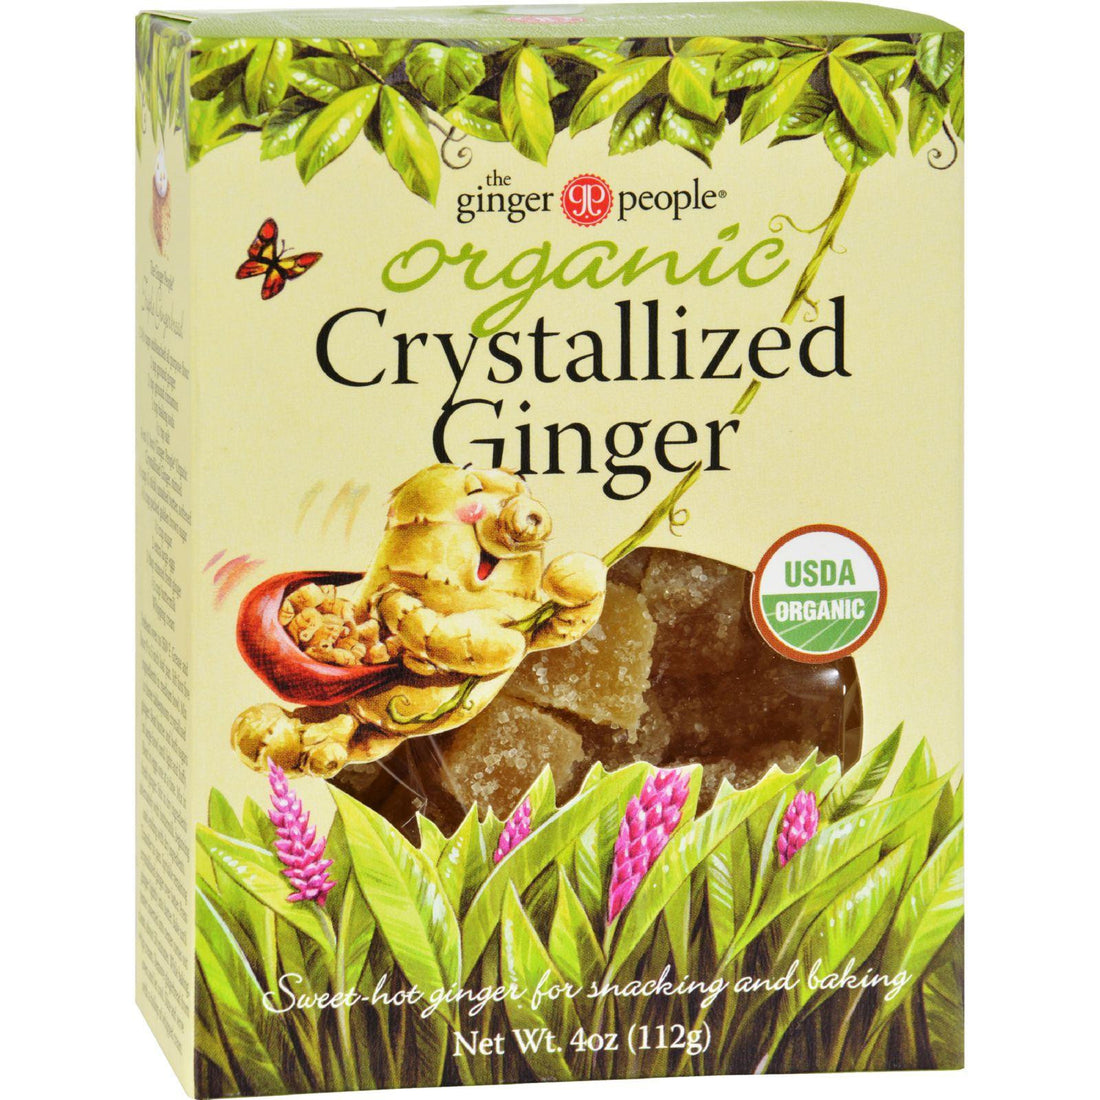 Mother Mantis: Ginger People Organic Crystallized Ginger Box - 4 Oz - Case Of 12 Ginger People